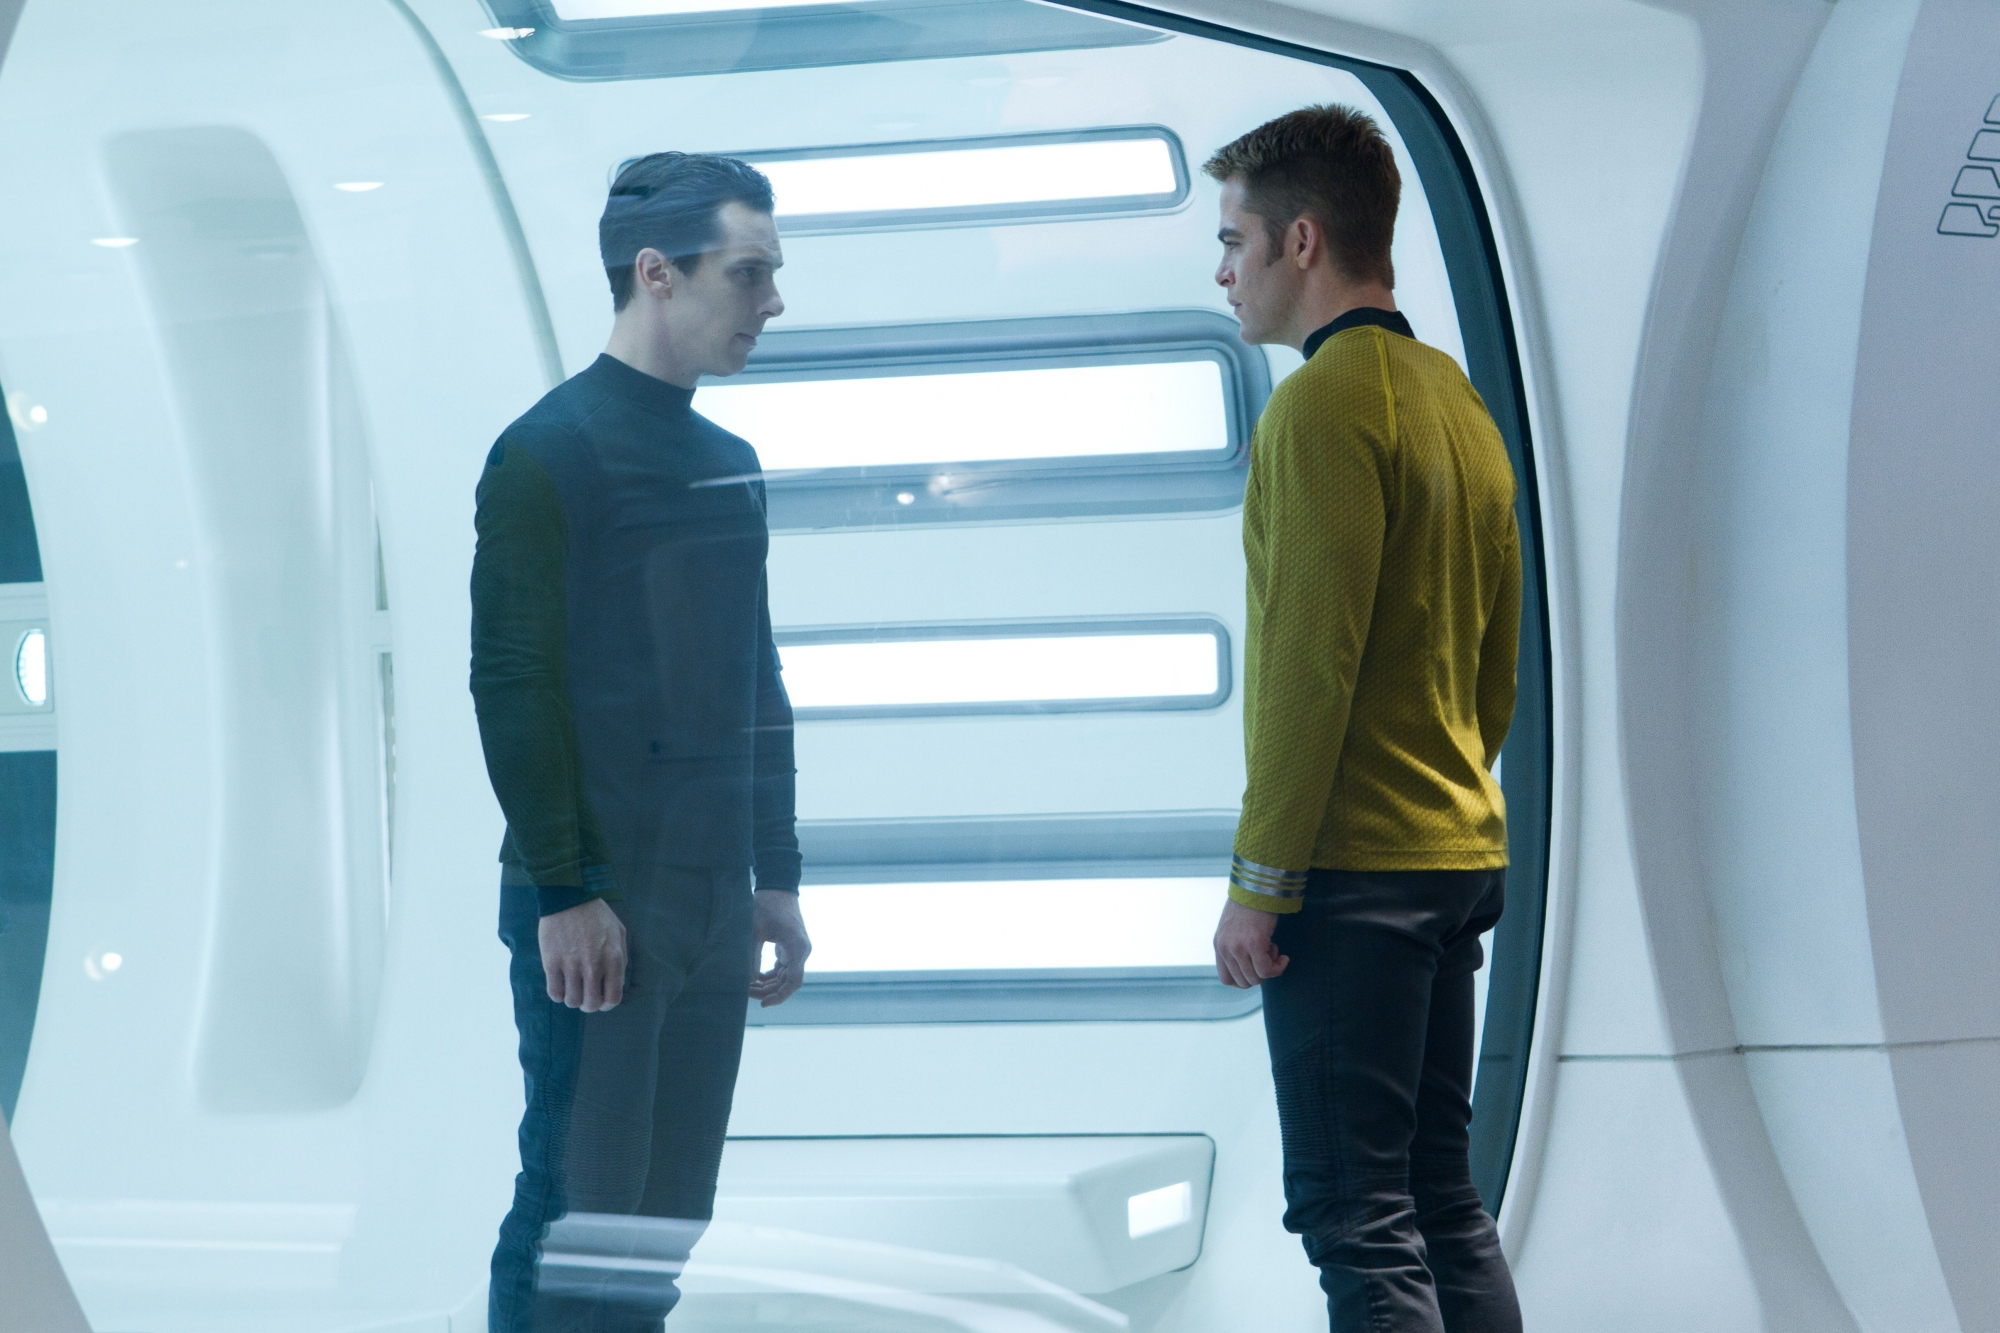 star-trek-into-darkness-benedict-cumberbatch-chris-pine1